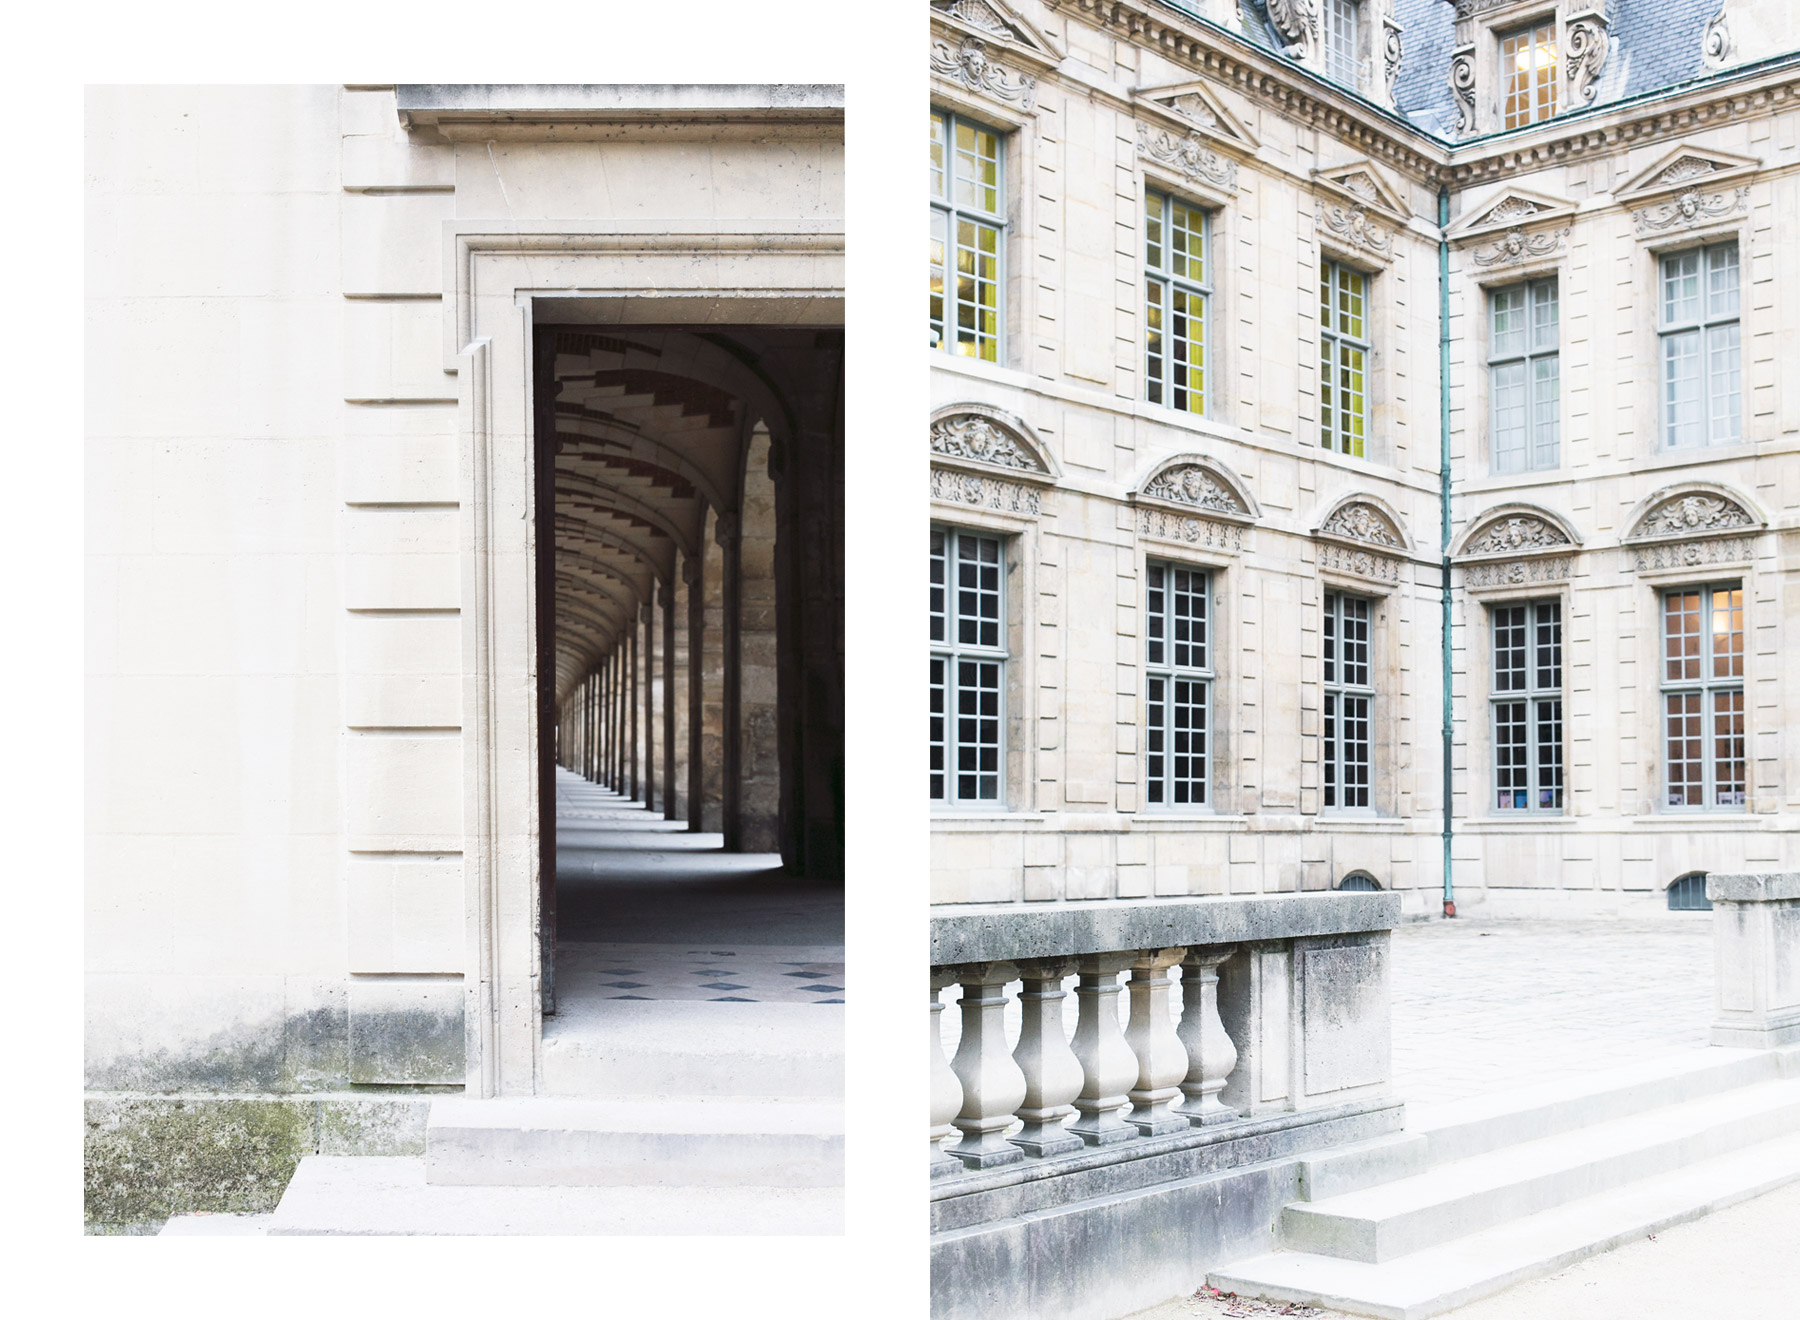 Hôtel de Sully by Carin Olsson (Paris in Four Months)